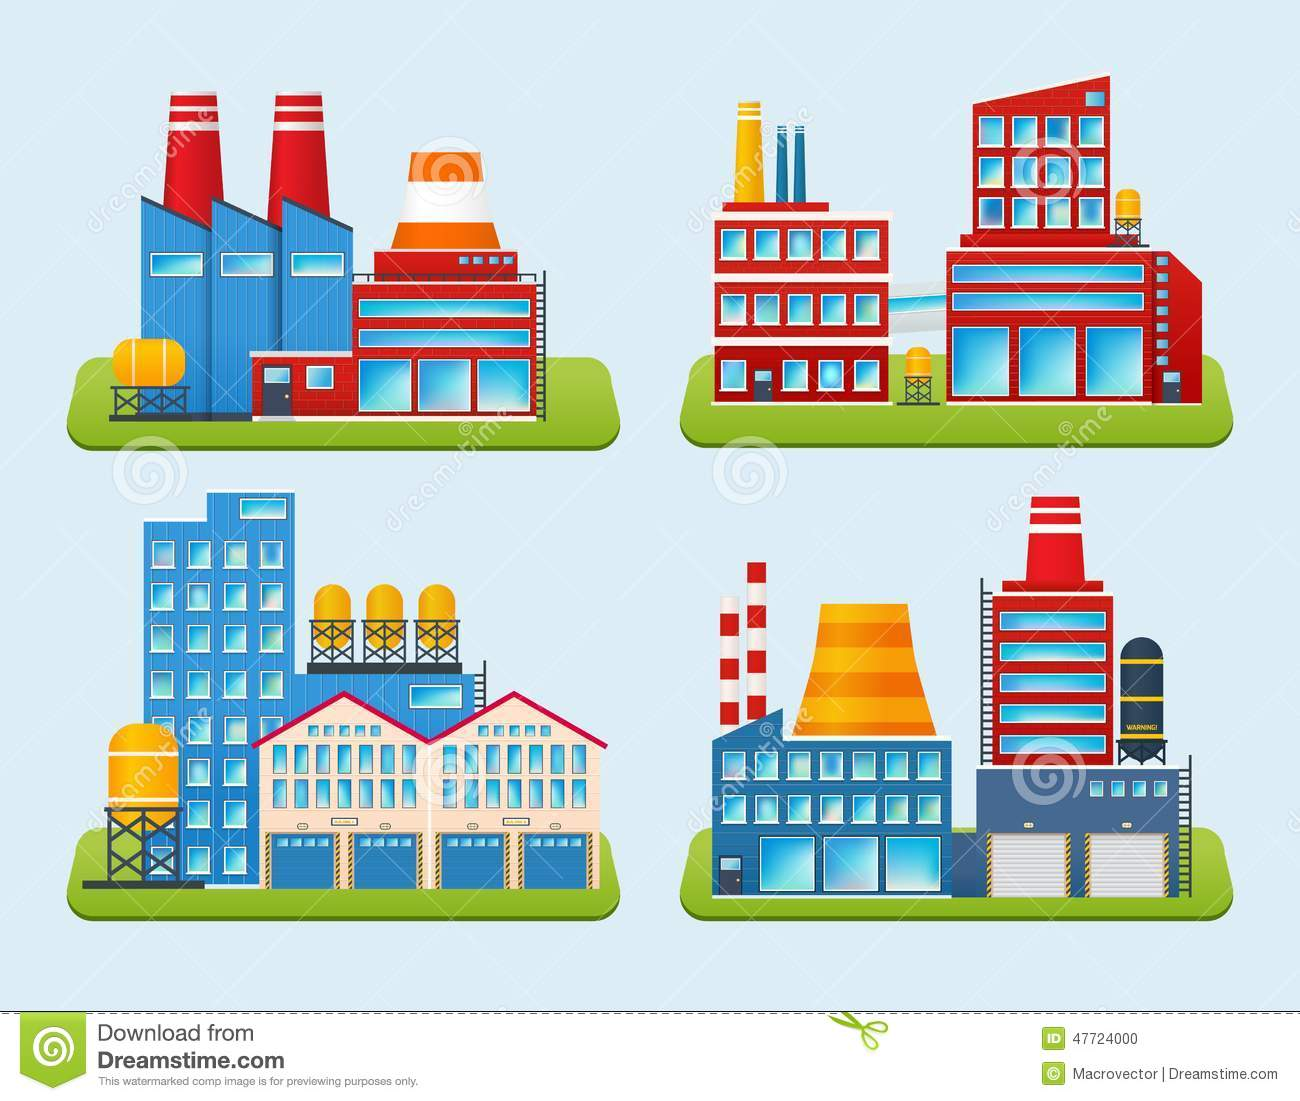 District Heating Station Stock Illustrations.